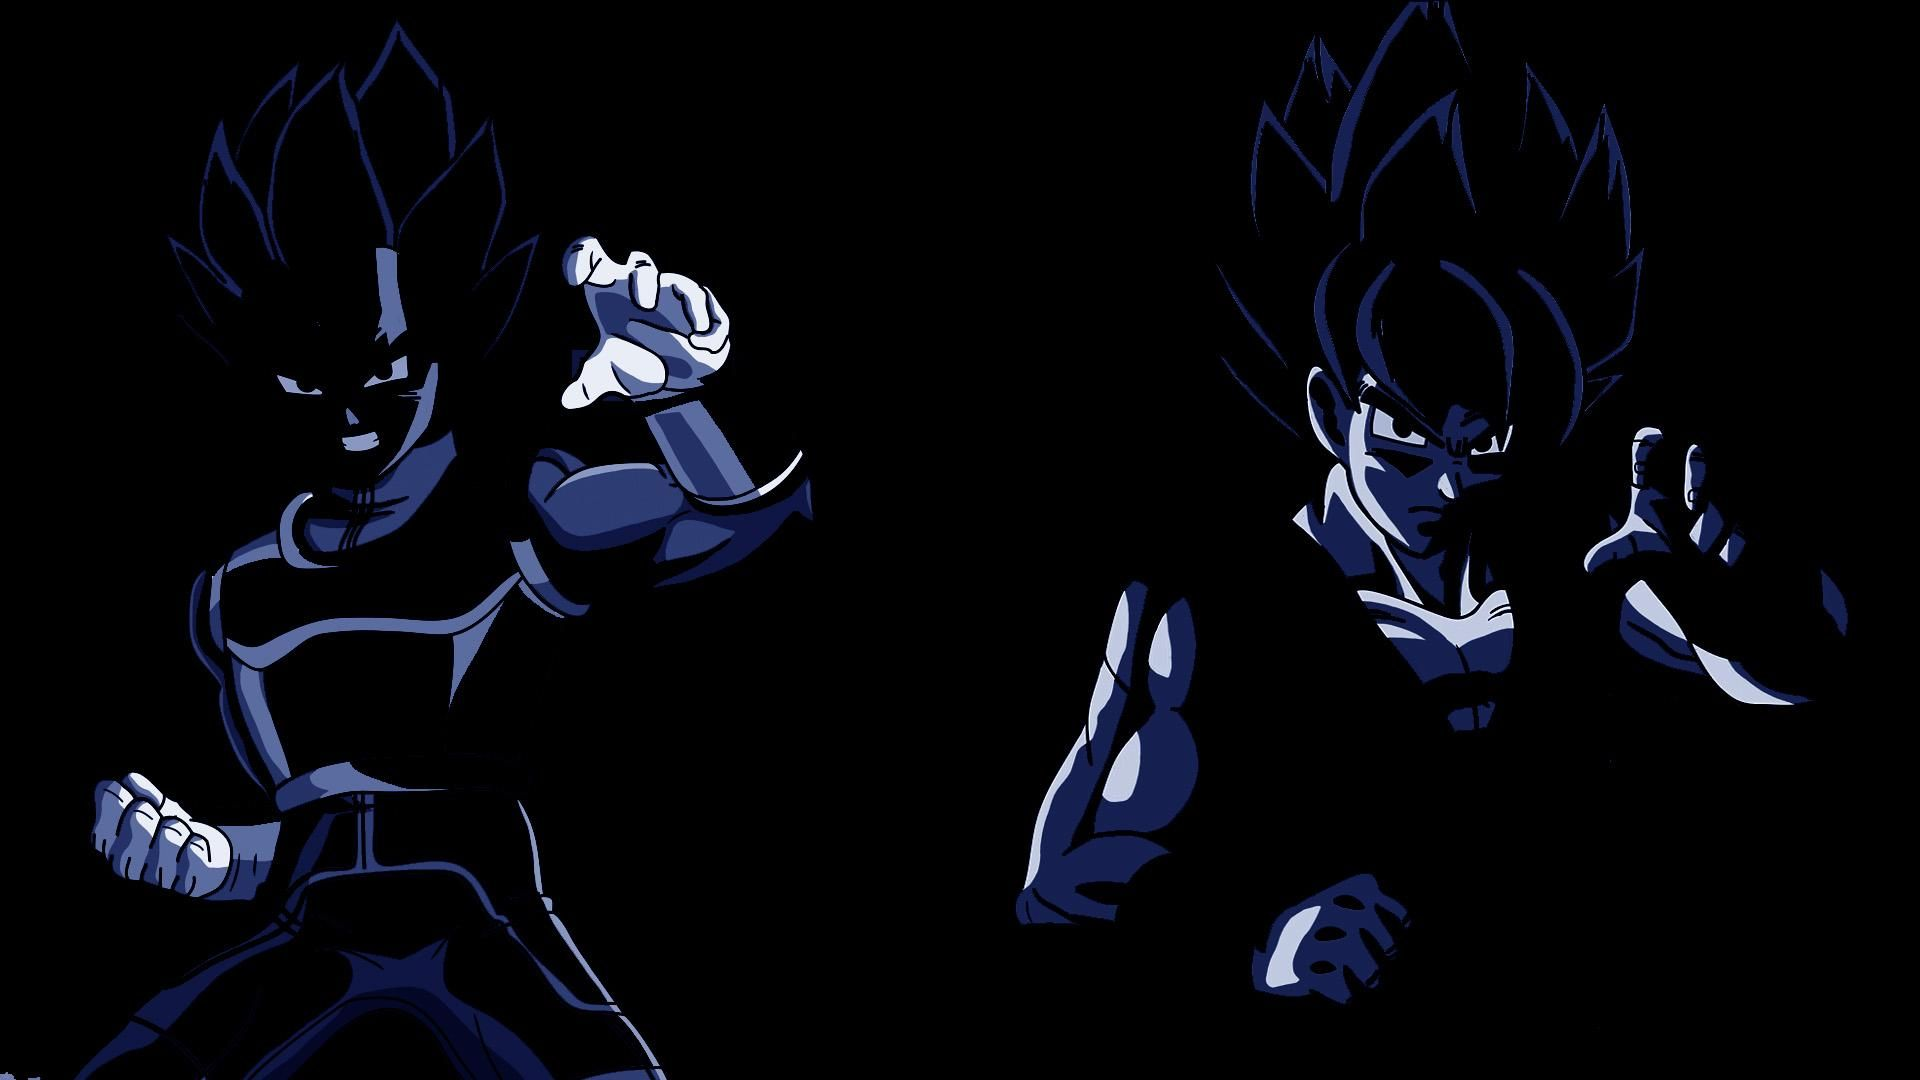 1920x1080 Goku And Vegeta Super Saiyan Blue Need Iphone 6s Plus Wallpaper Background For Iphone6splu Super Saiyan Blue Goku And Vegeta Iphone 6 S Plus